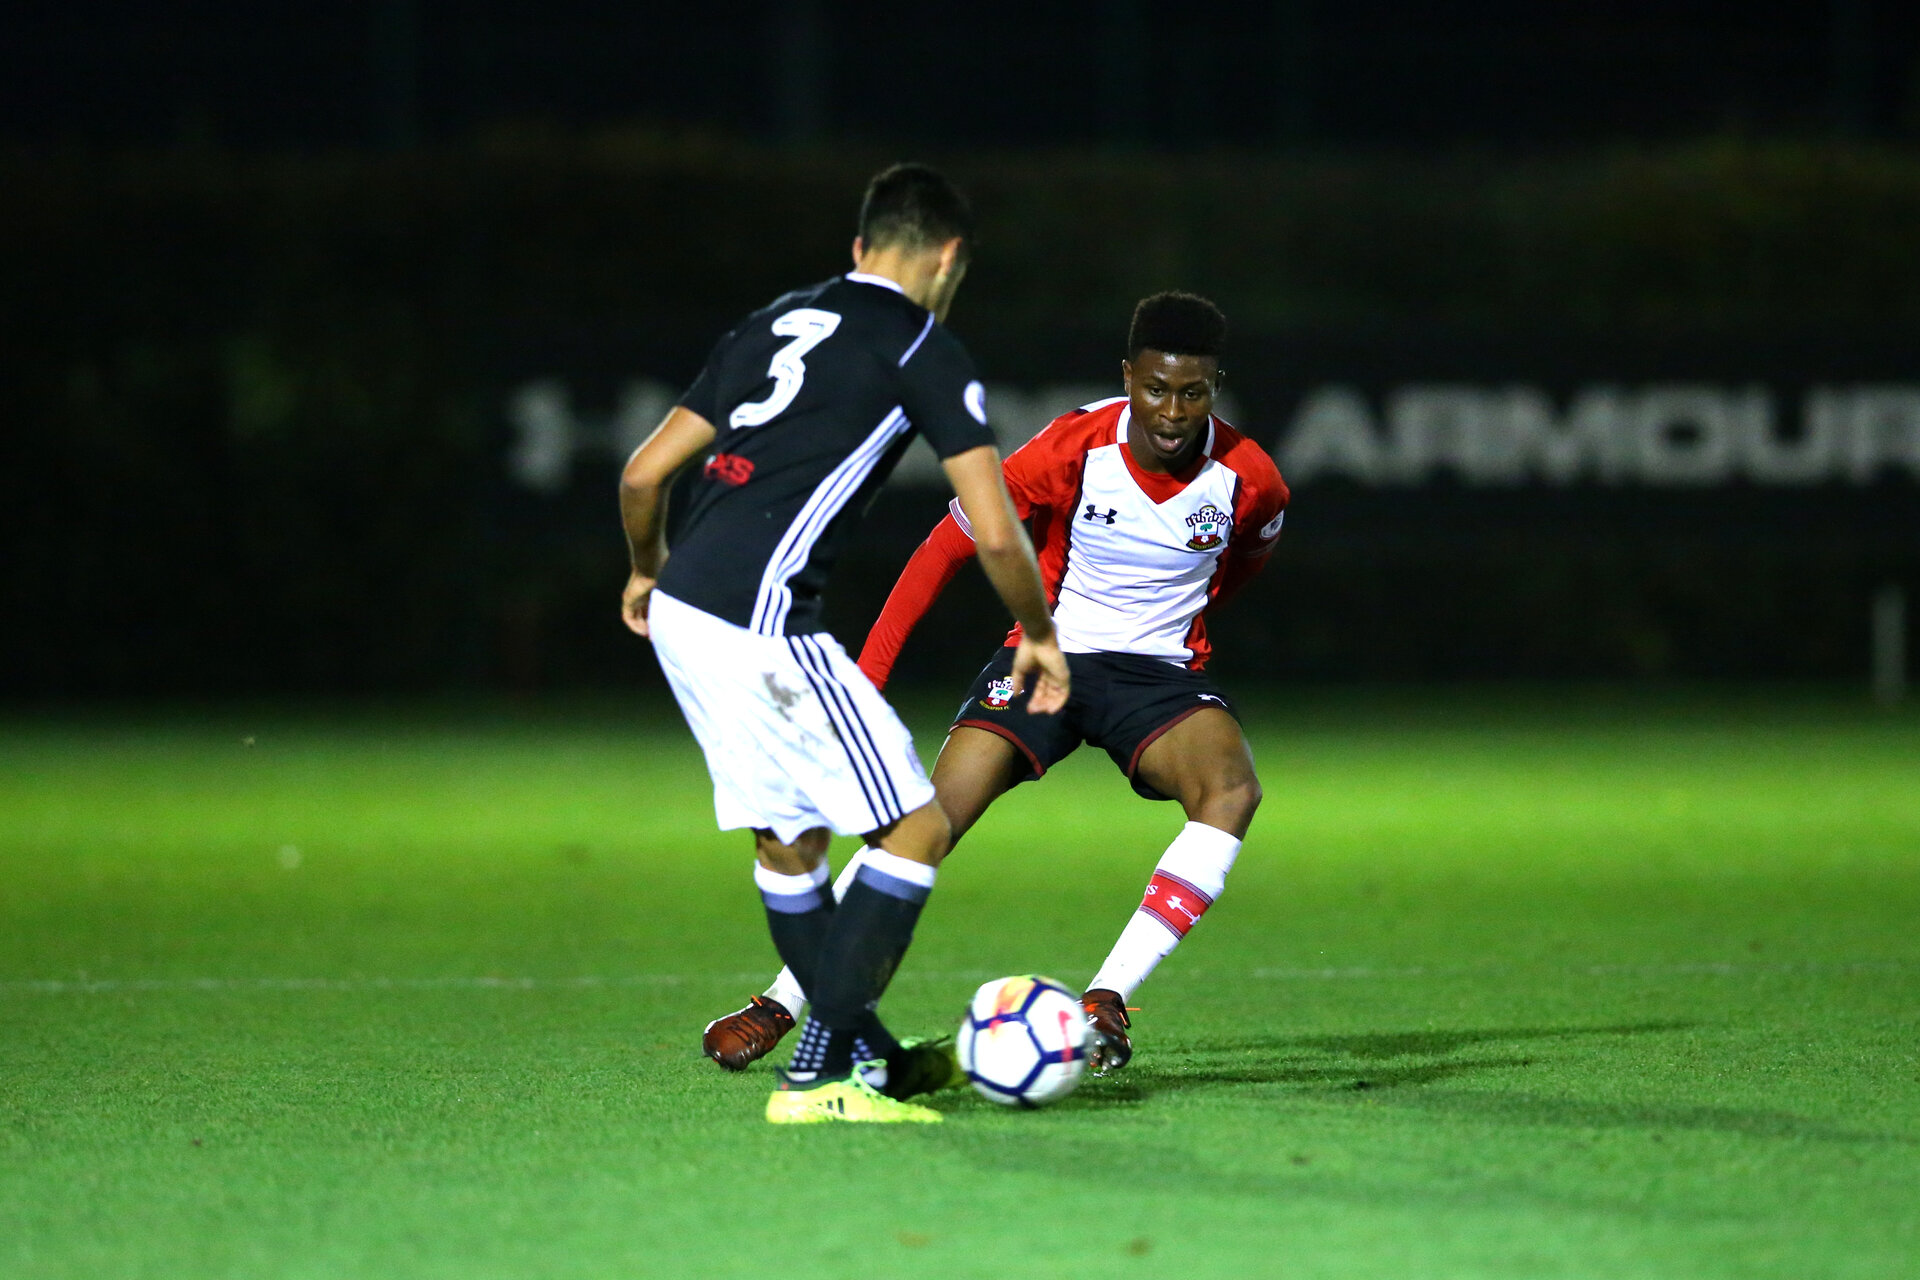 SOUTHAMPTON, ENGLAND - NOVEMBER 20: Nathan Tella (middle) during the U23s Premier League 2  between Southampton FC & Fullham FC match on November 20, 2017 in Southampton, England. (Photo by James Bridle - Southampton FC/Southampton FC via Getty Images)